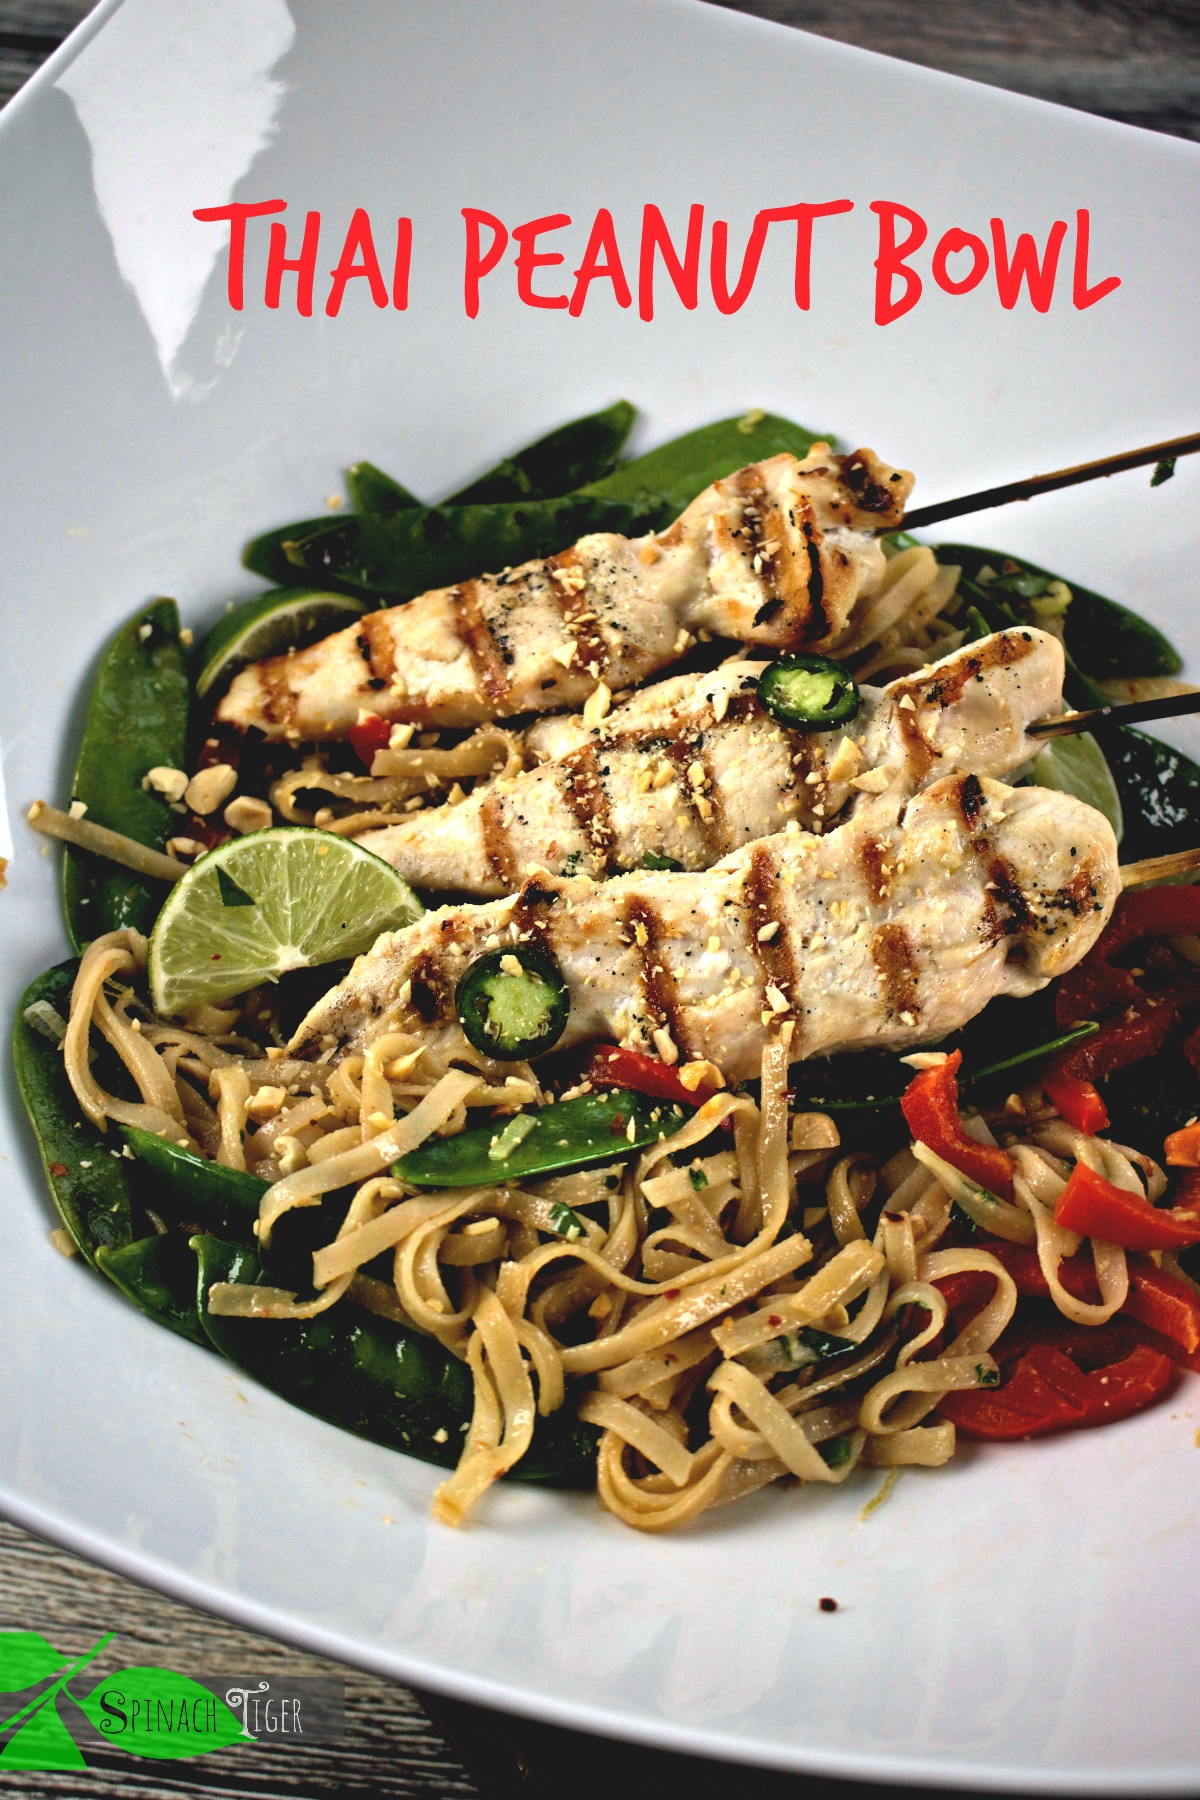 Thai Peanut Bowl, Healthy Chicken Pasta Recipes from Spinach Tiger